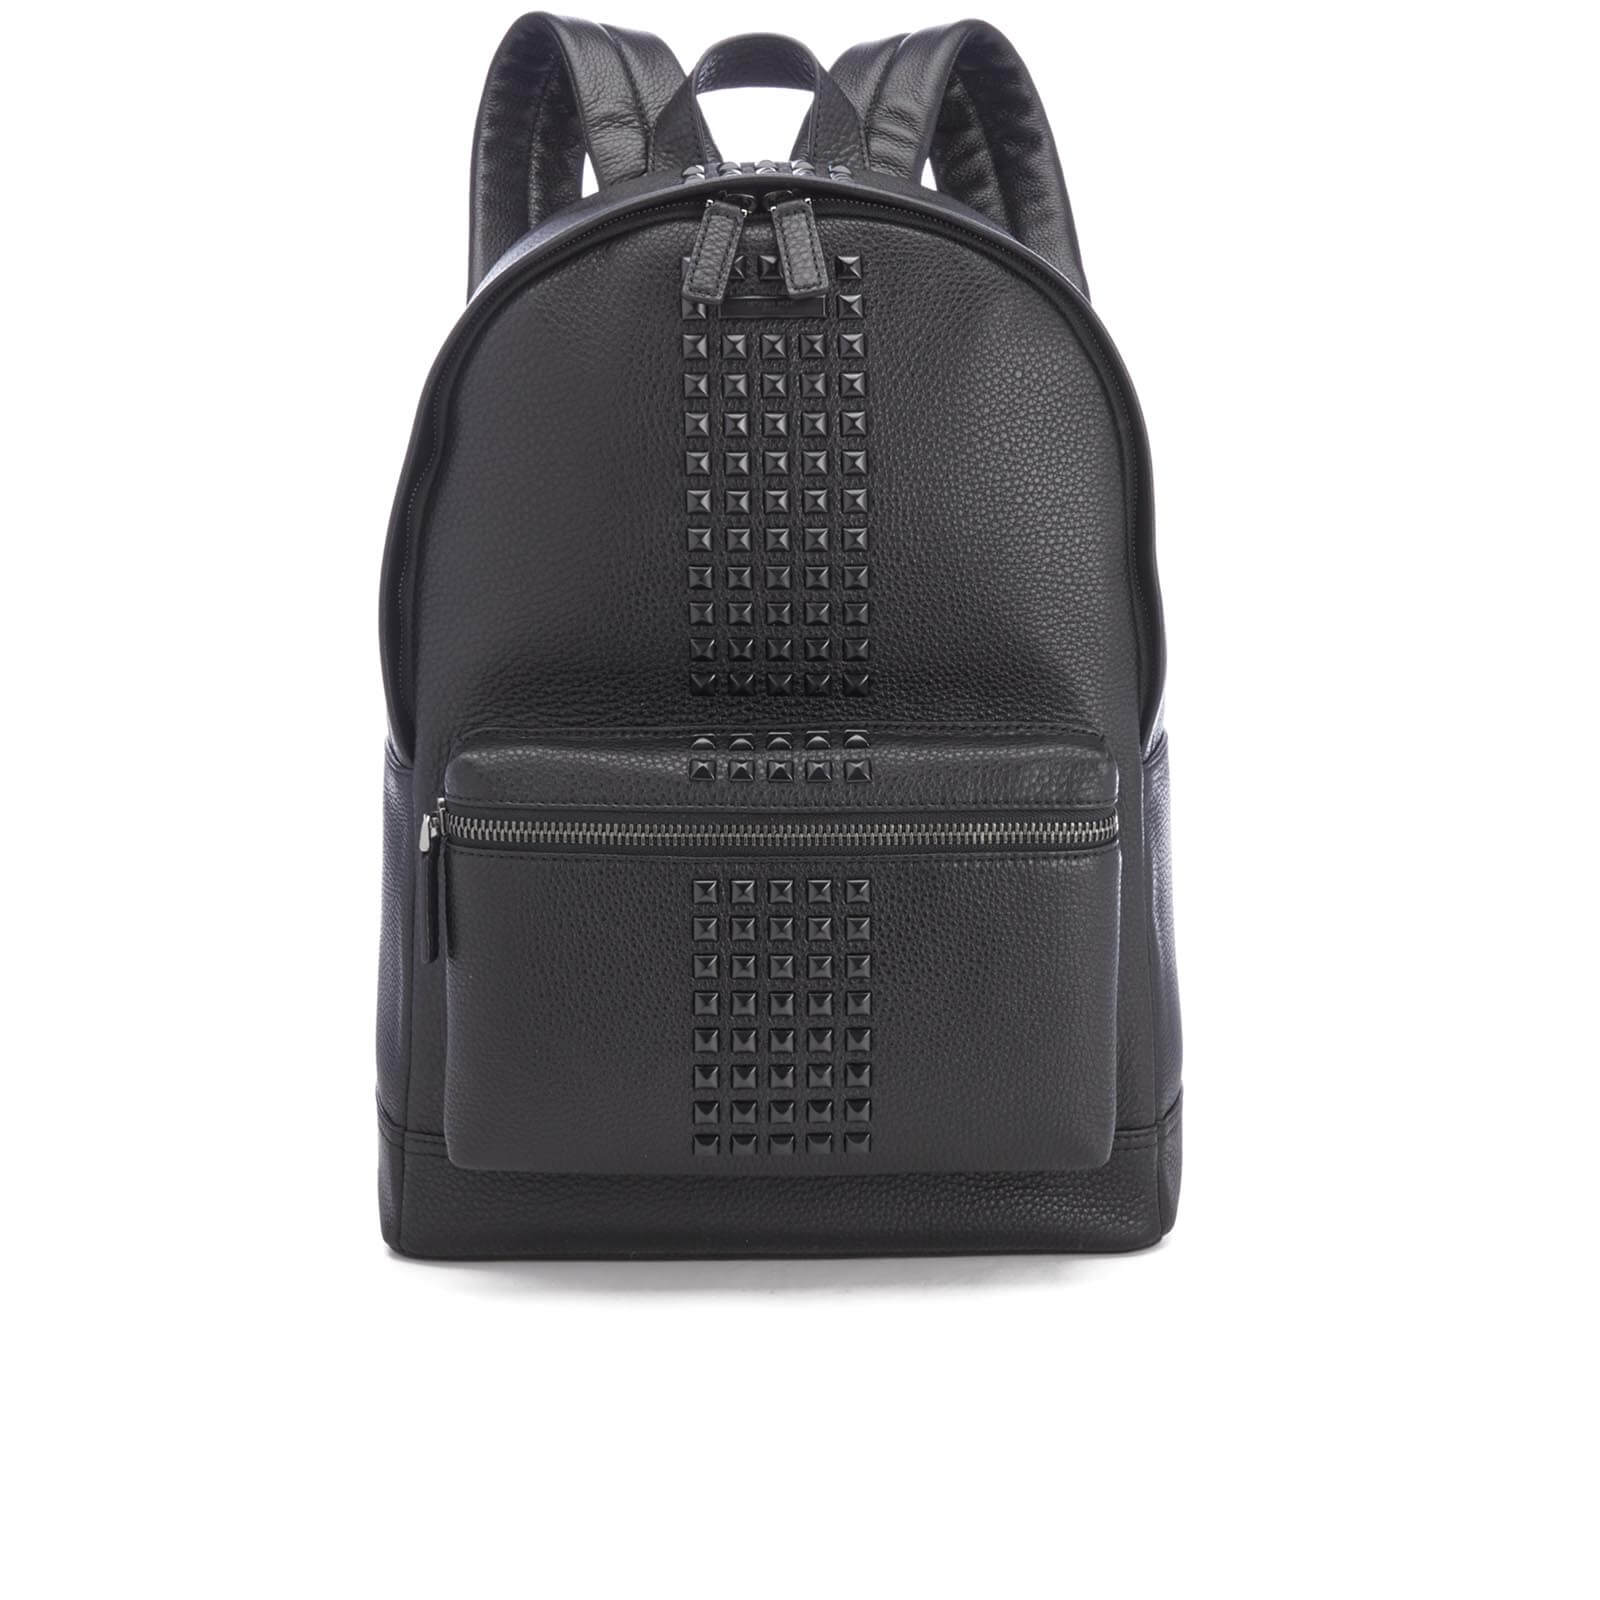 018f89f6beb51 Michael Kors Men s Bryant Pebble Leather Studded Backpack - Black - Free UK  Delivery over £50